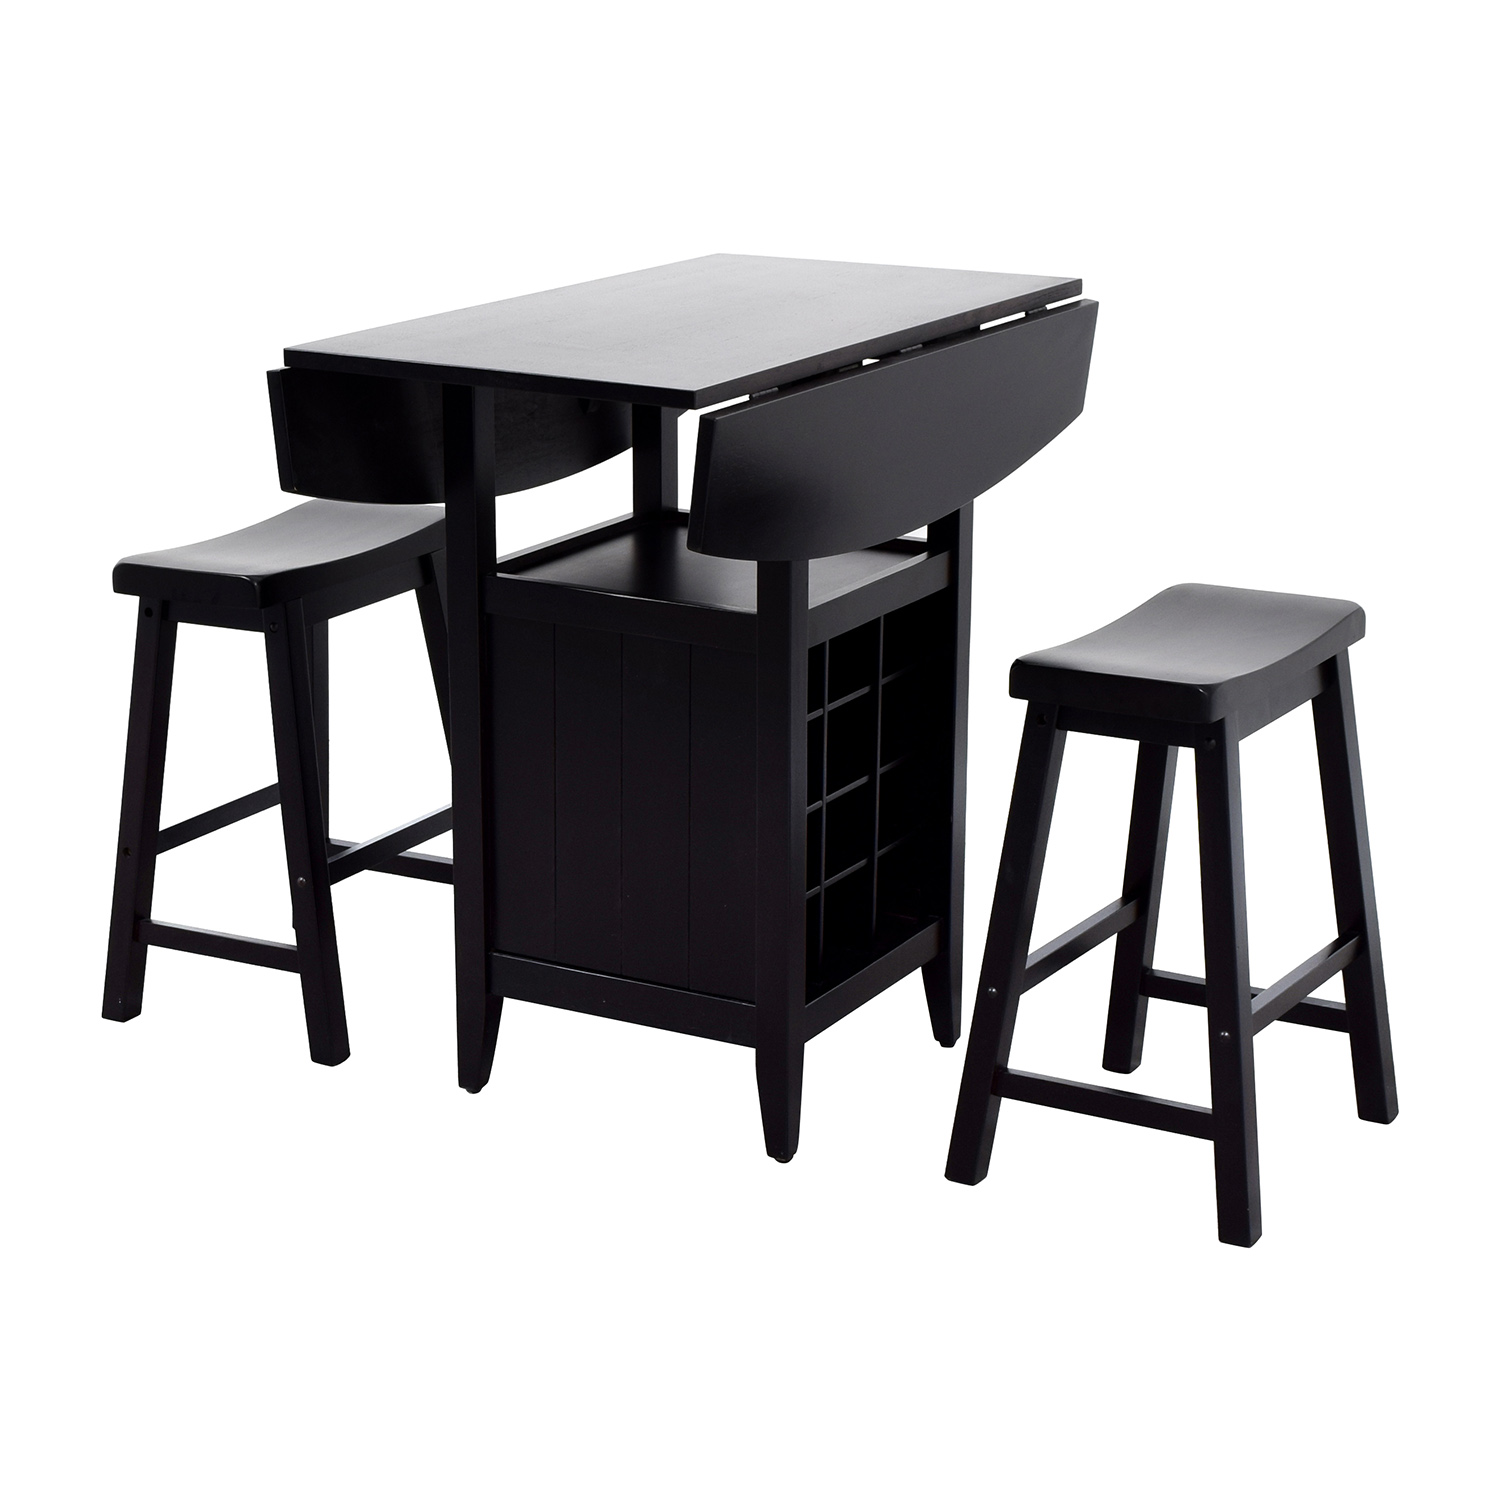 Dinette Wood Table with Storage with Two Stools Tables